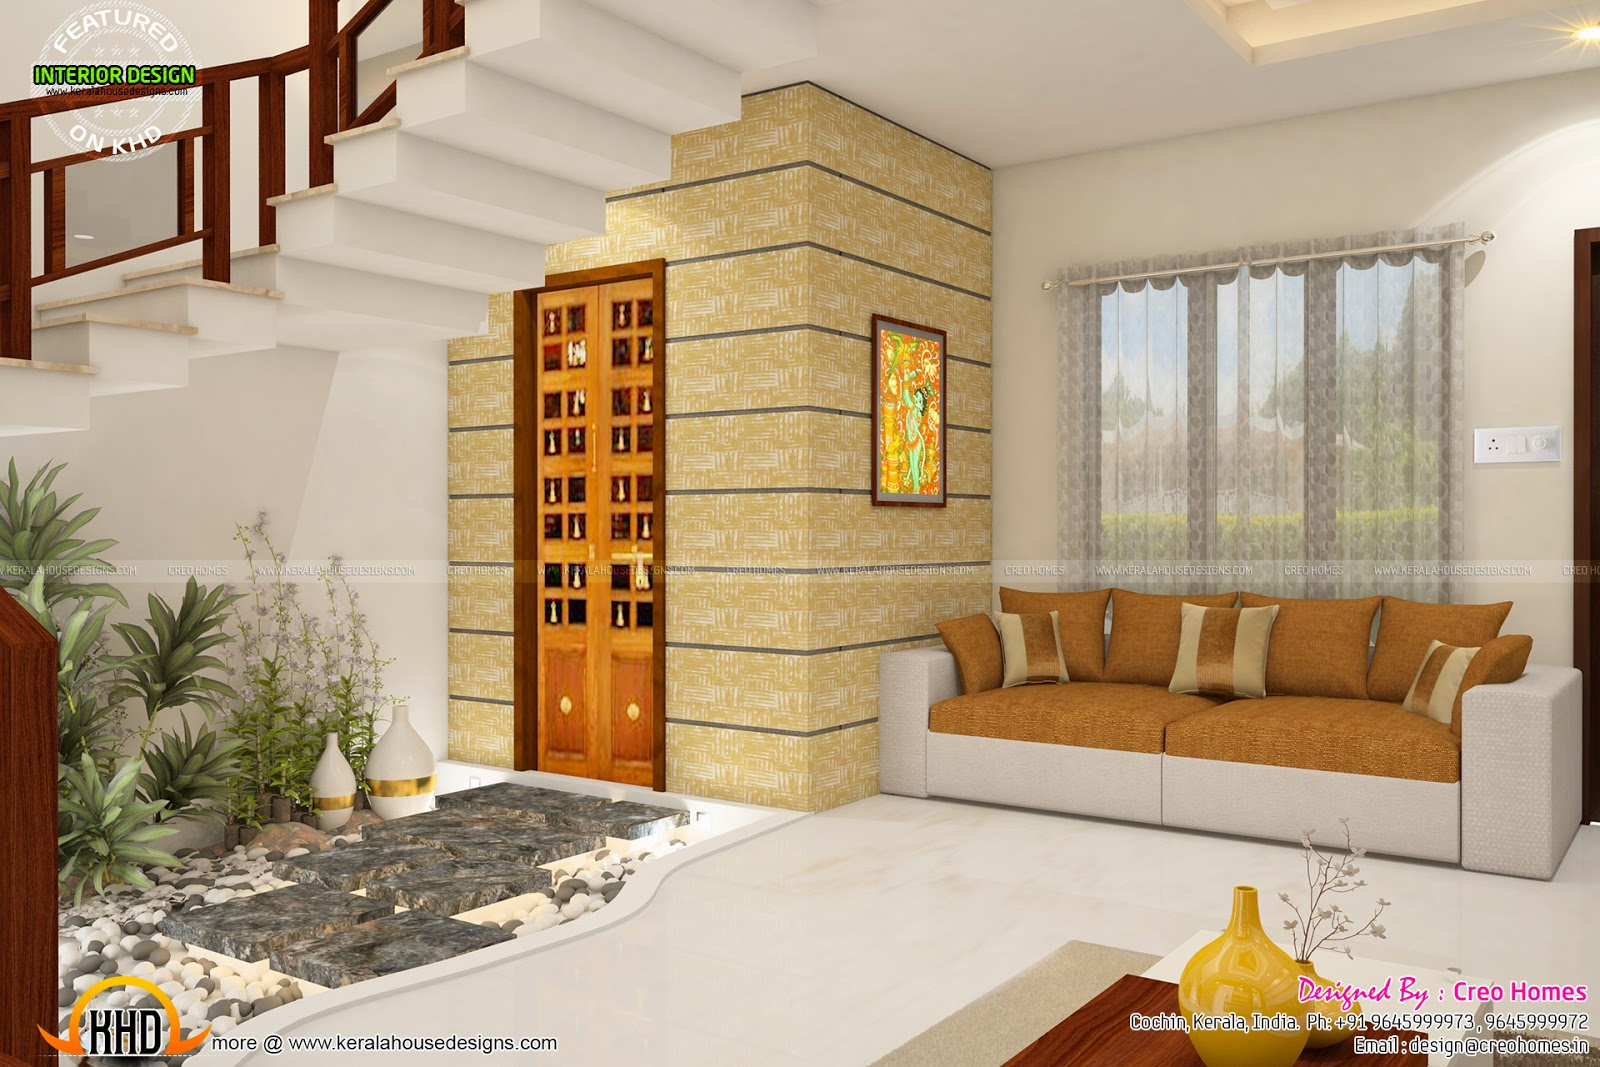 Total home interior solutions by creo homes kerala home for House design photos interior design